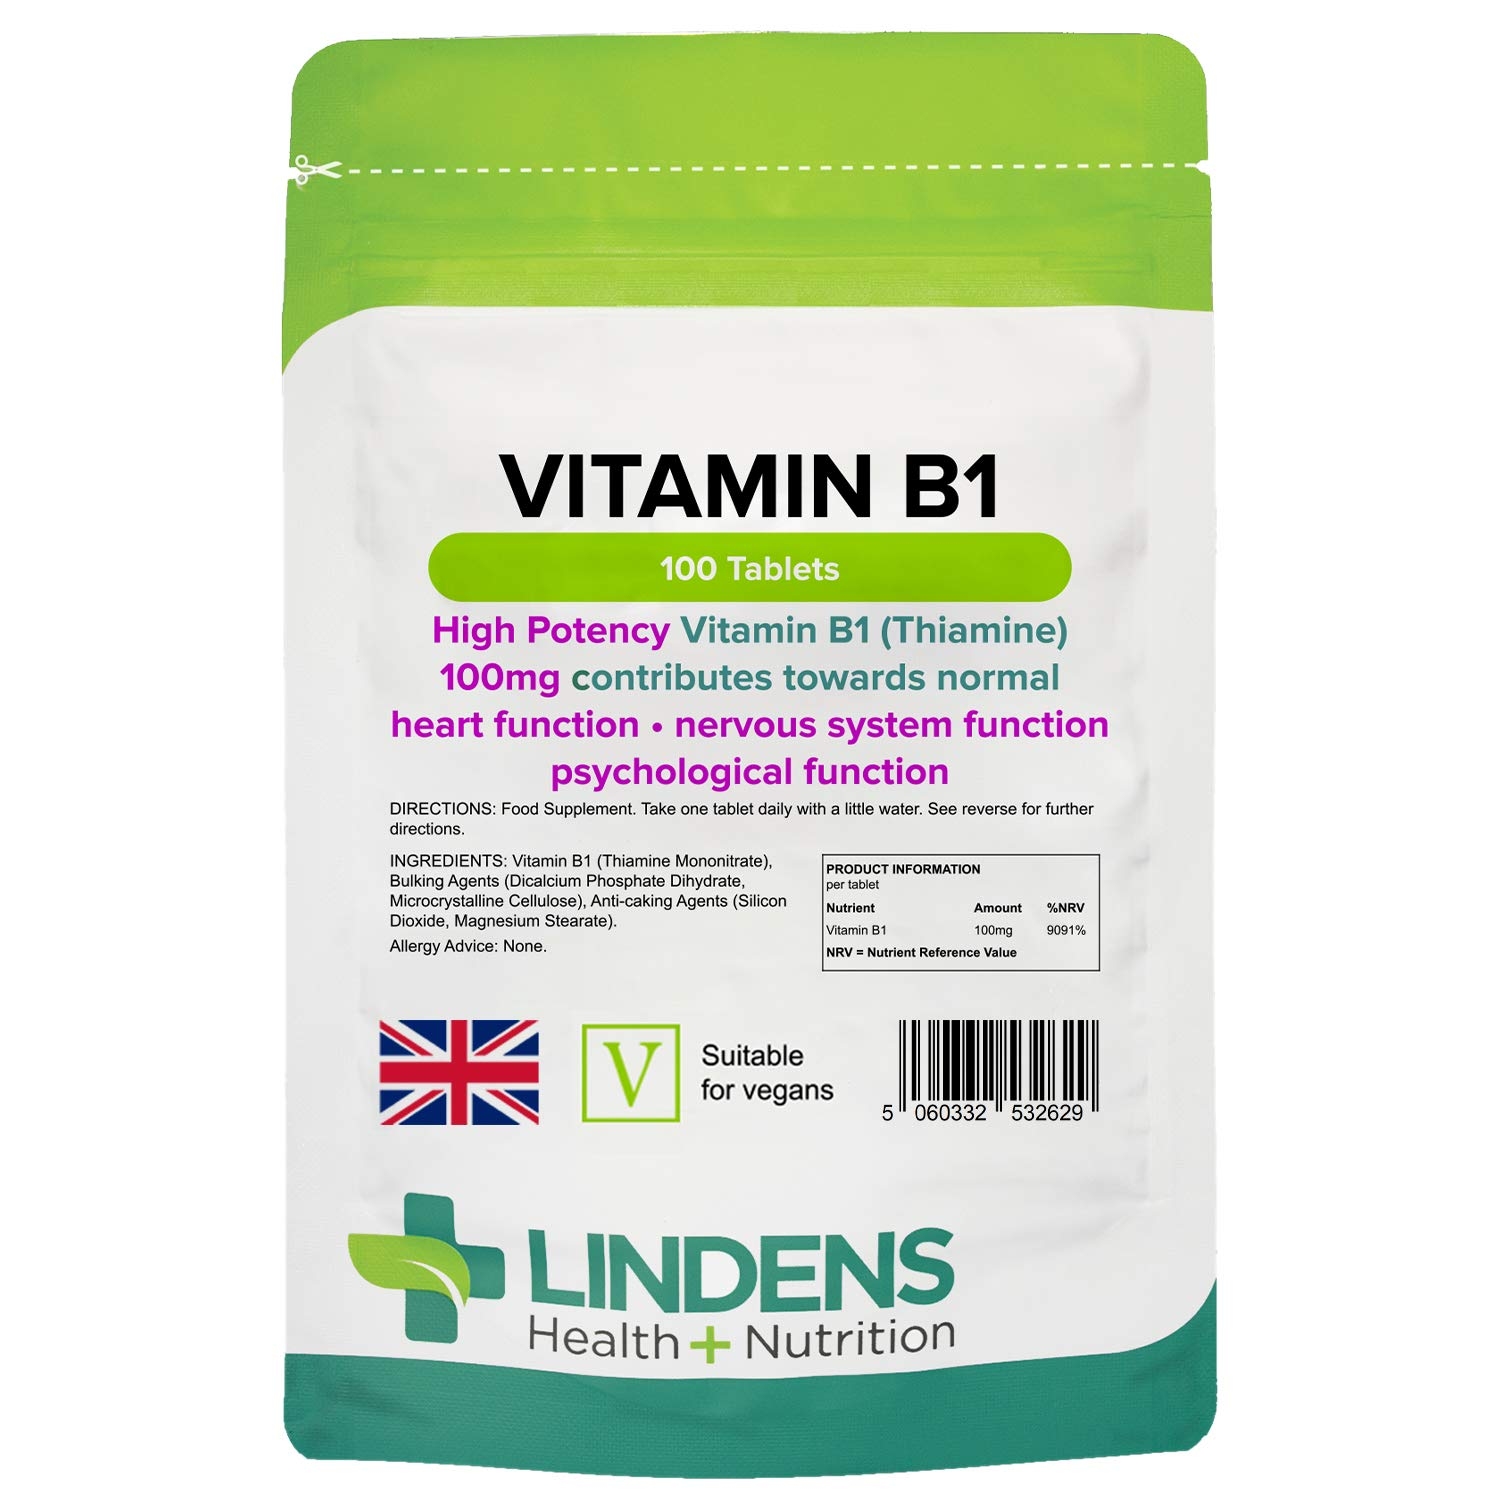 Lindens Vitamin B1 Thiamine Tablets - 100 Pack - for Heart, Immune and Psychological Function & Energy Release - UK Manufacturer, Letterbox Friendly